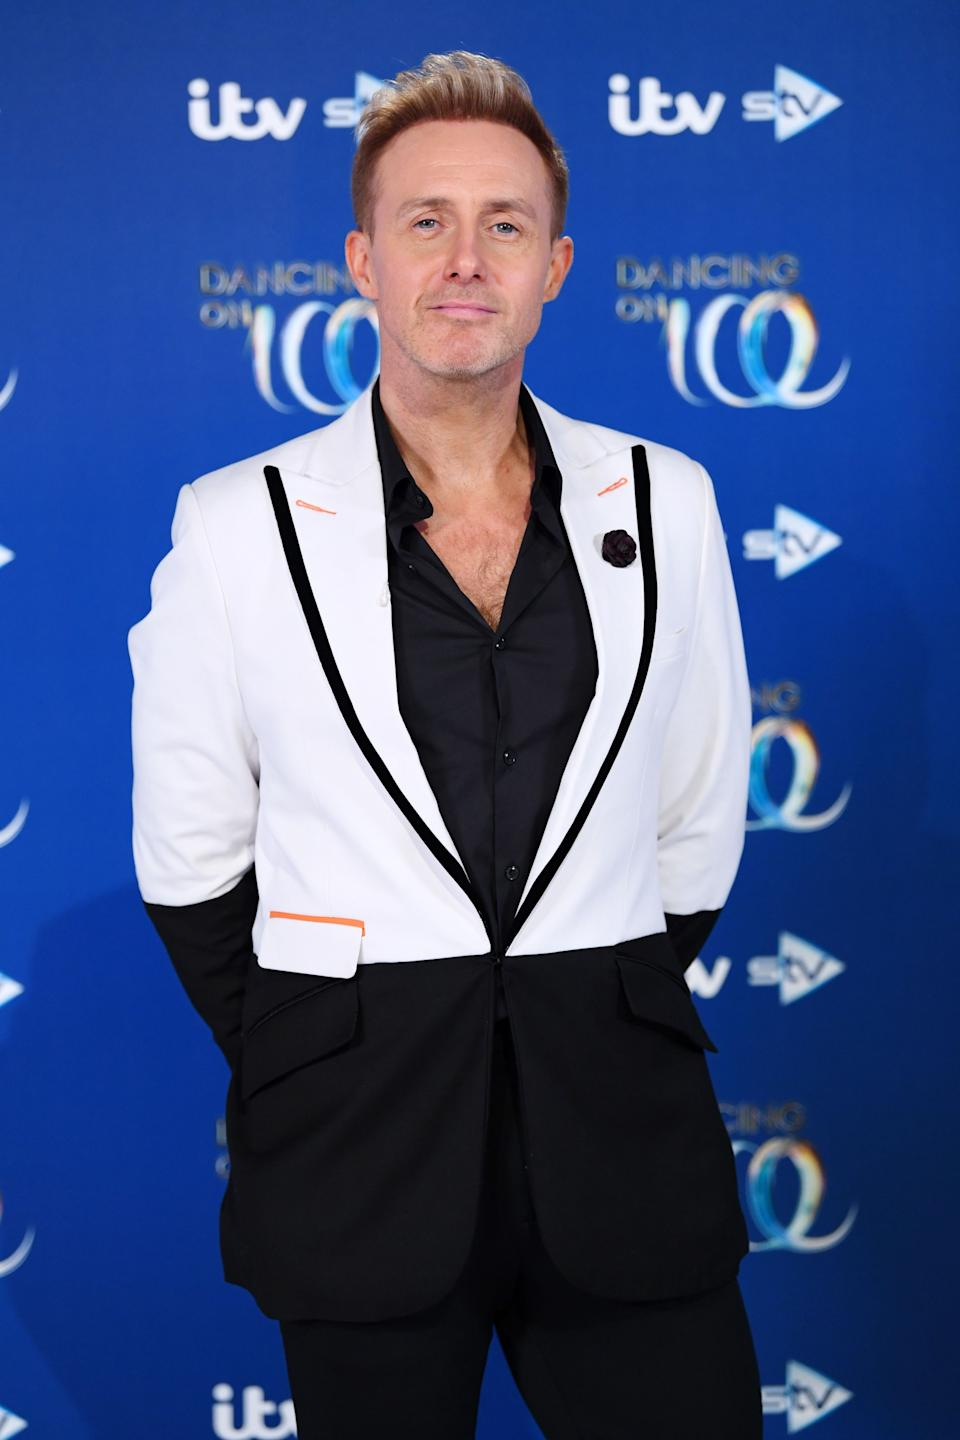 """Ian """"H"""" Watkins at the Dancing On Ice red carpet launch last year (Photo: David Fisher/Shutterstock)"""